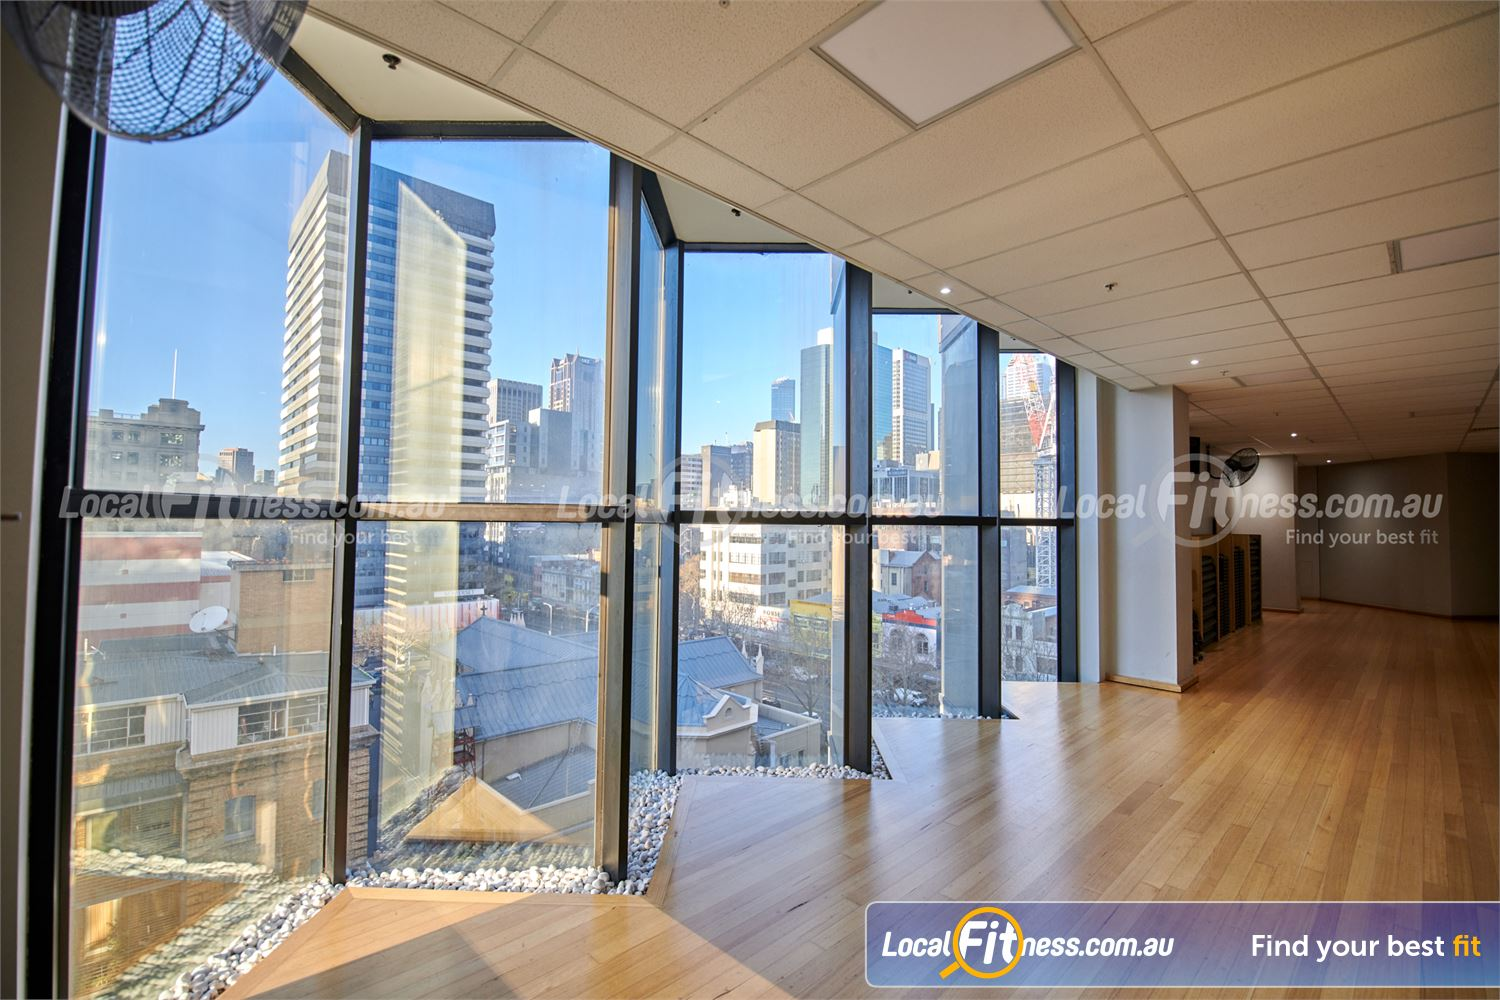 Fitness First Melbourne Central Platinum Near East Melbourne Stunning views from the Melbourne group fitness studio at Fitness First.